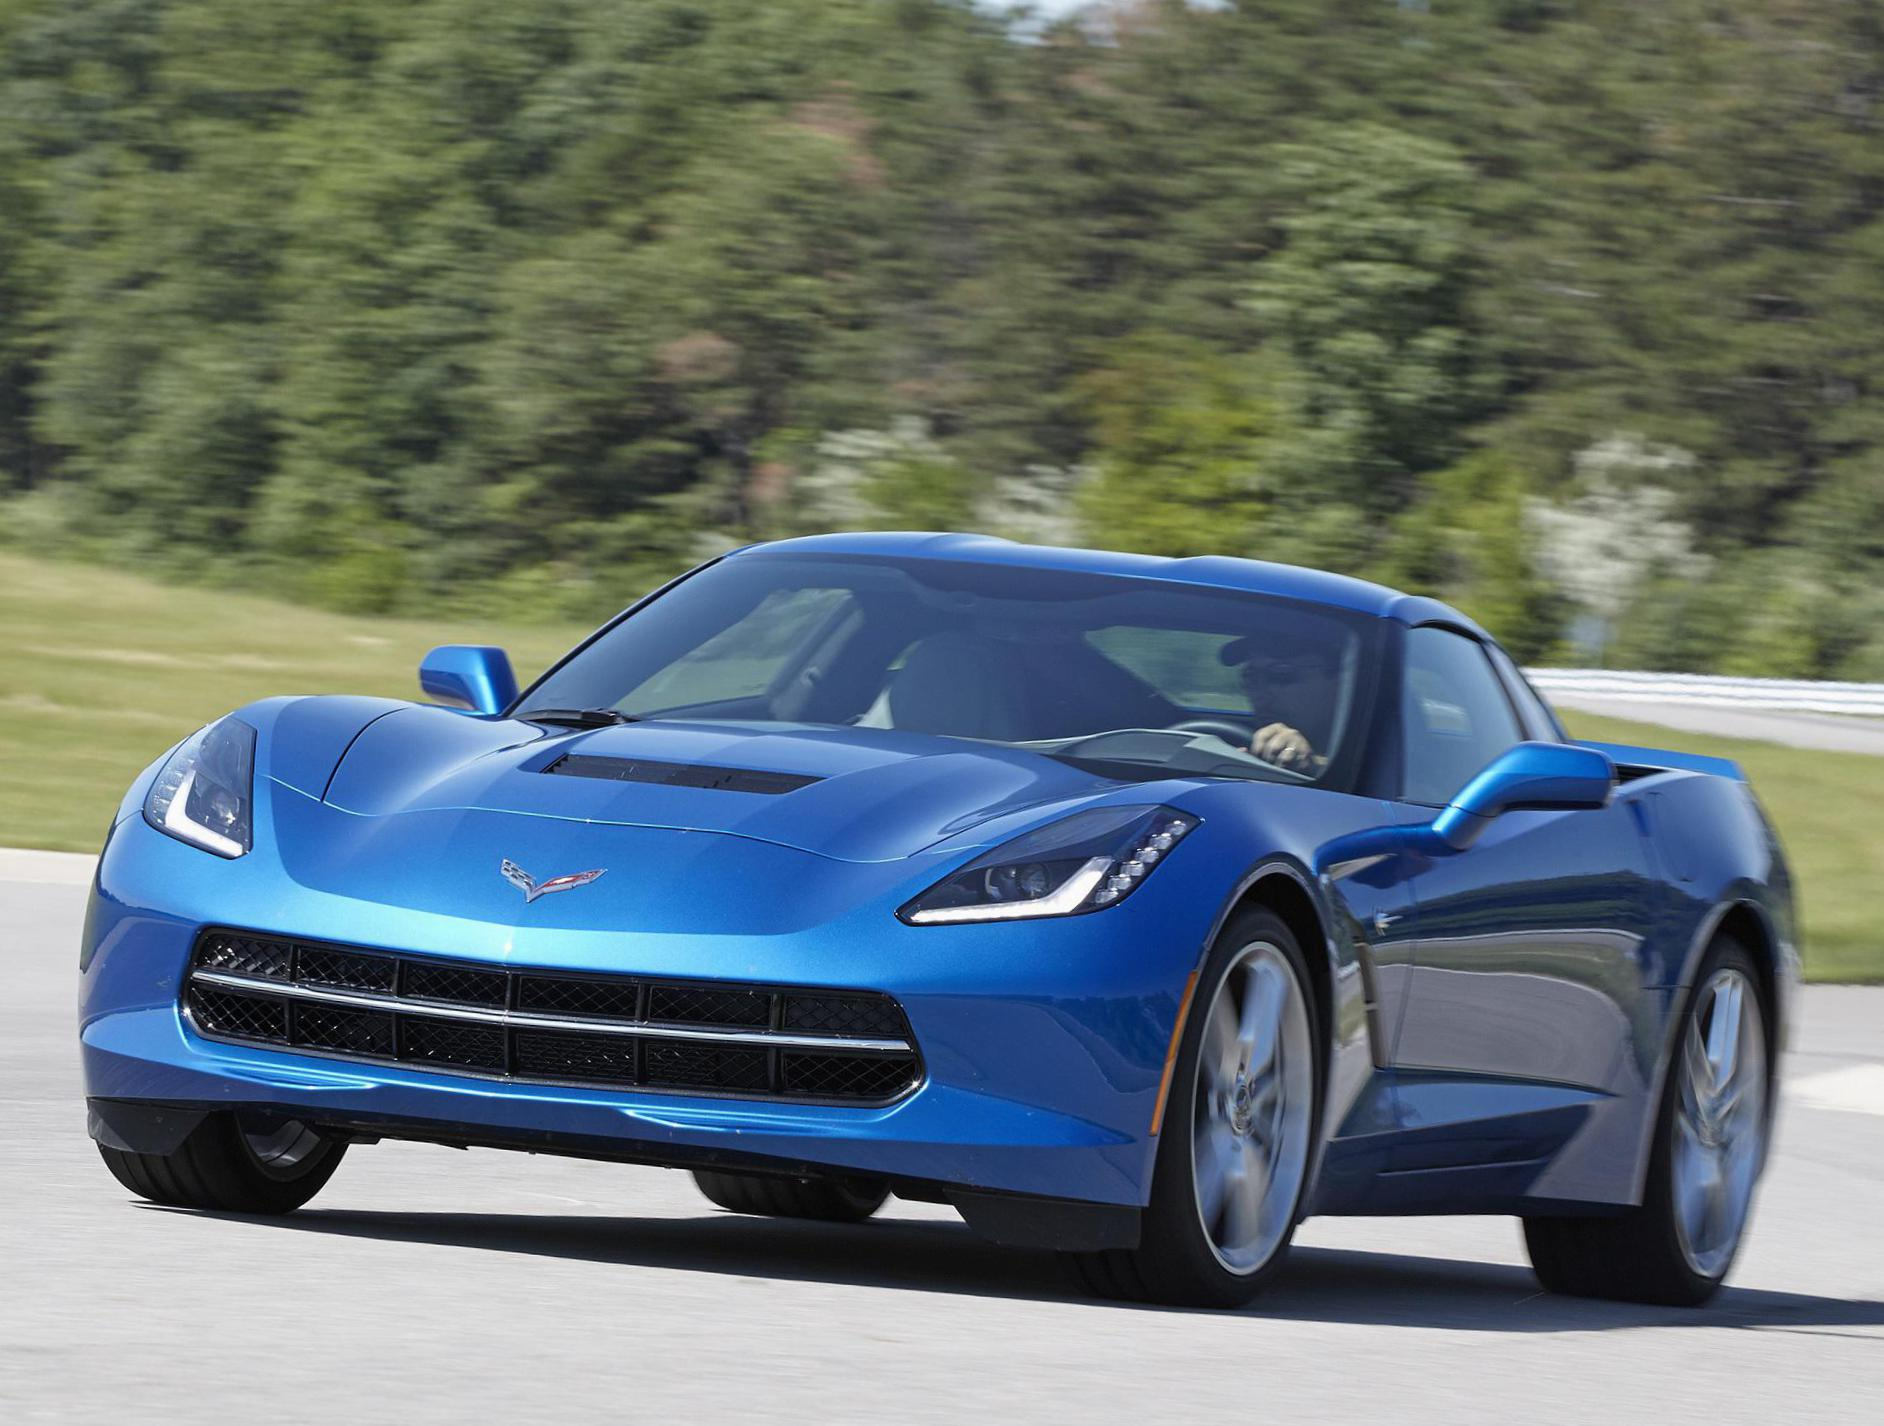 Corvette Stingray Coupe Chevrolet model 2015